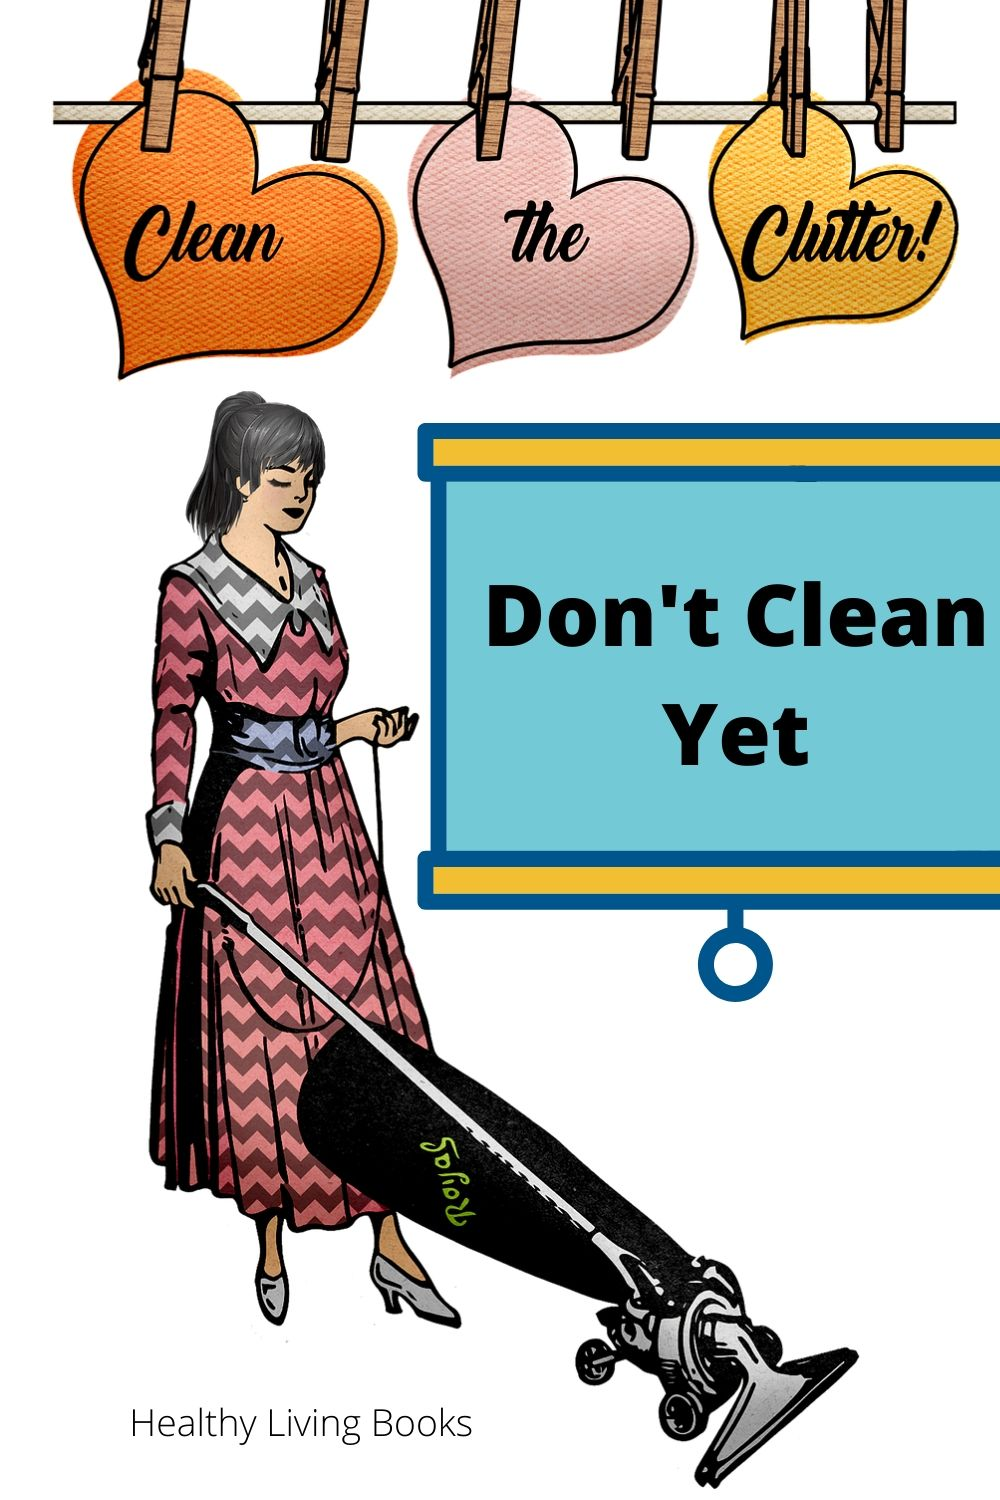 DontCleanYet-pin